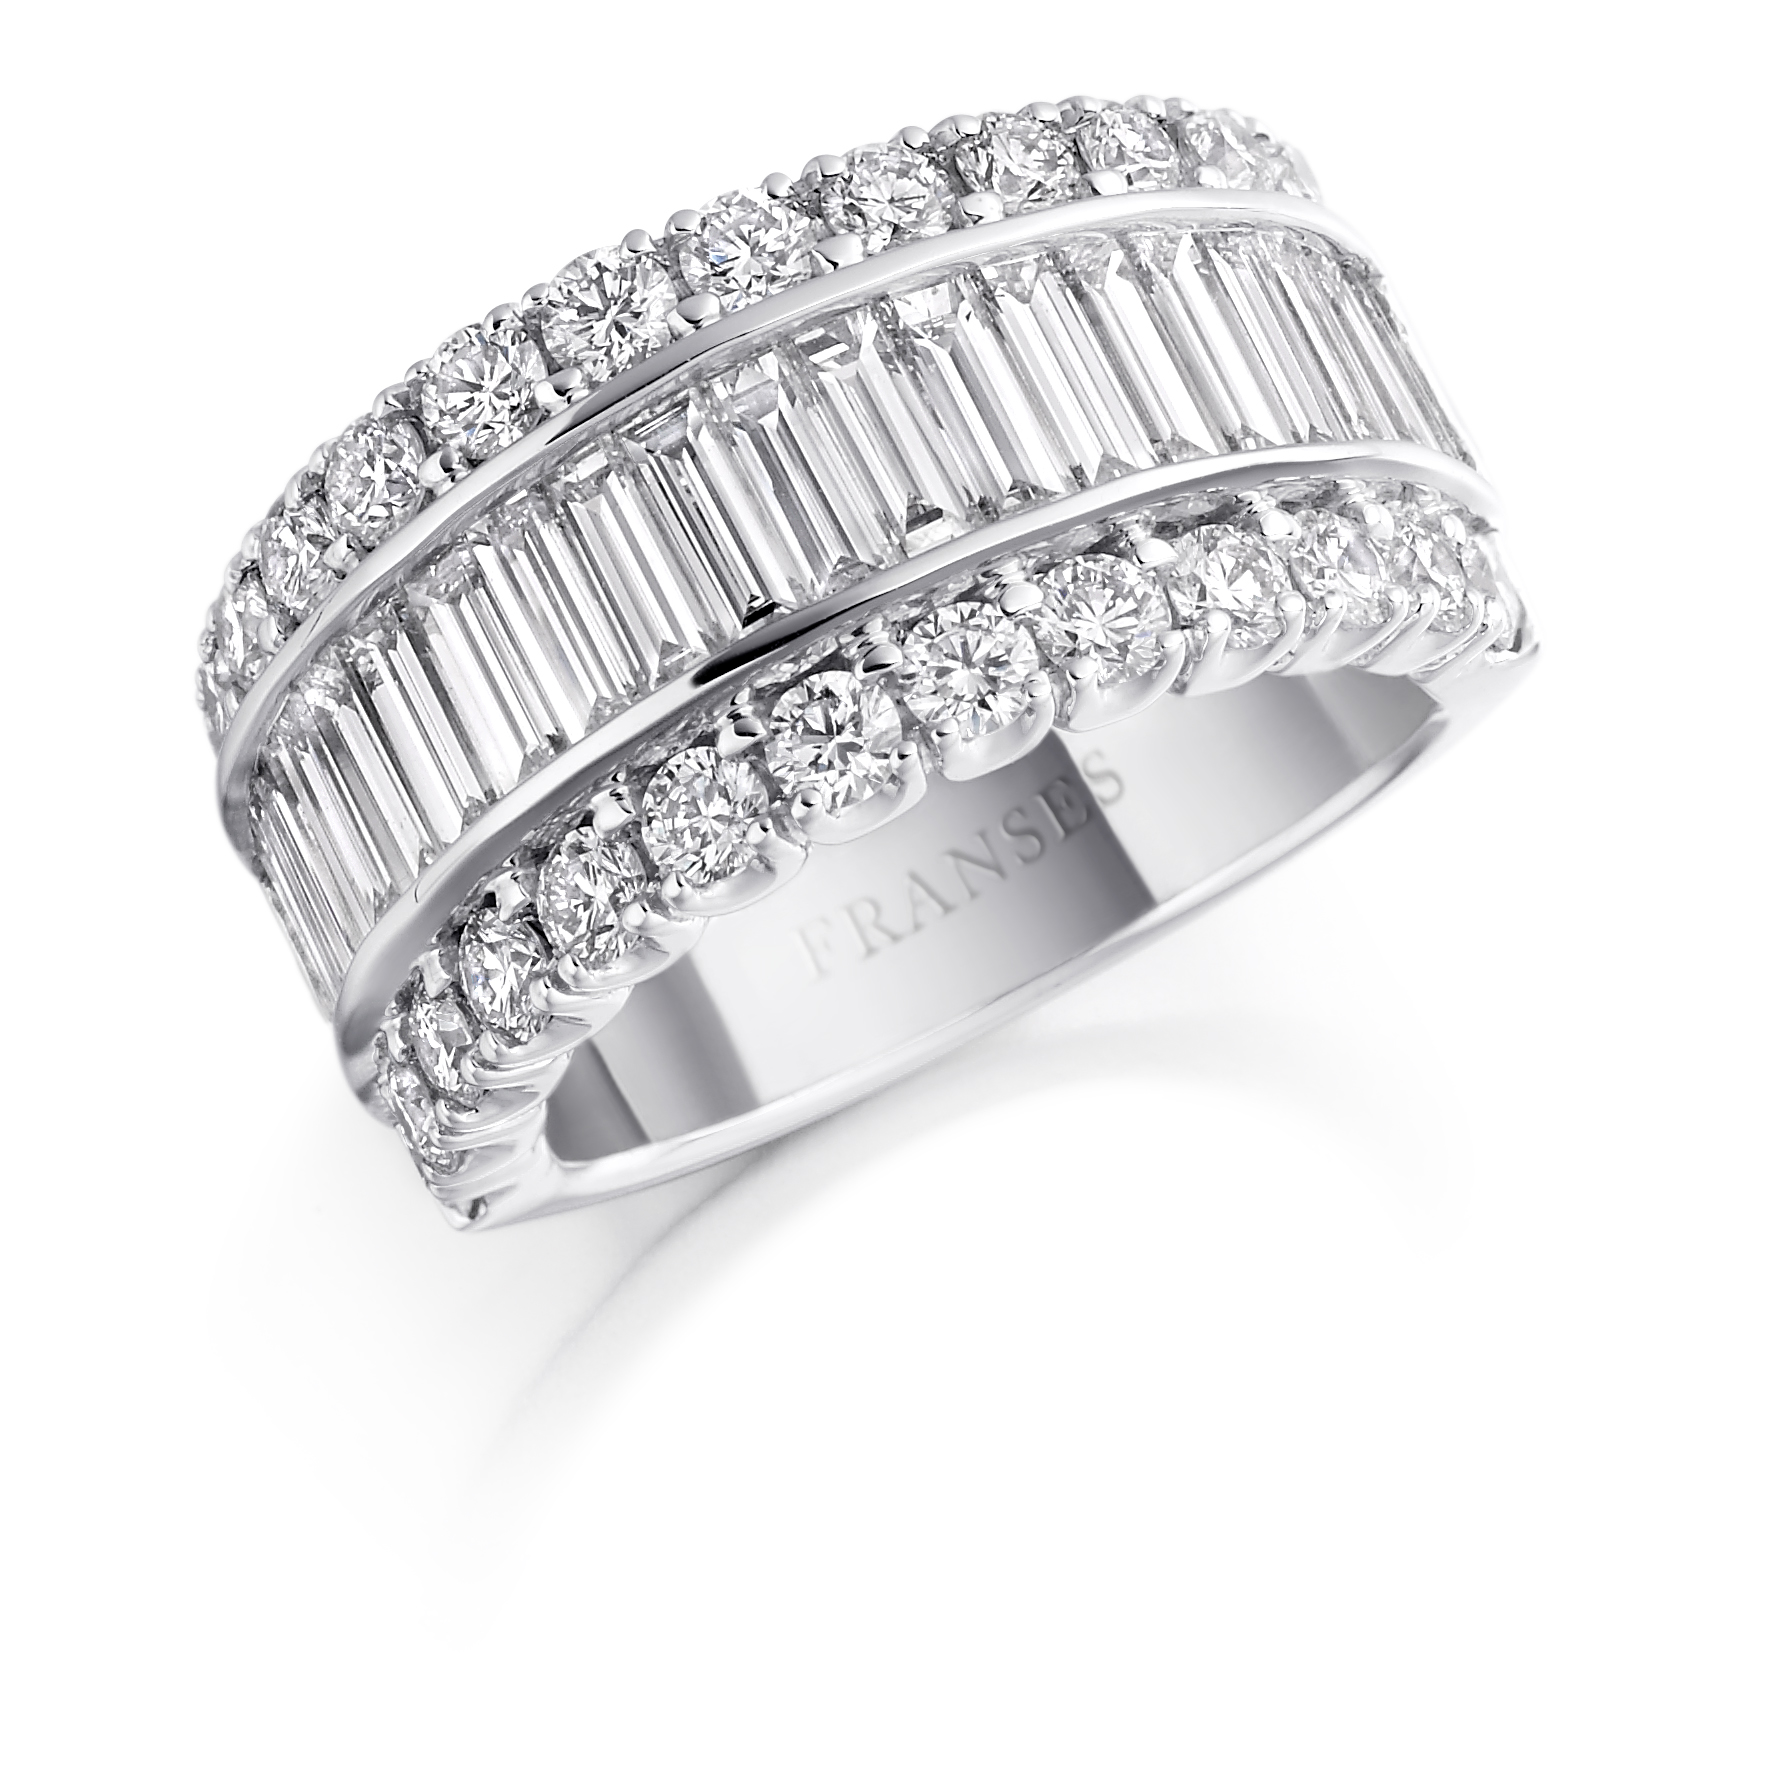 Baguette and brilliant-cut diamond ring